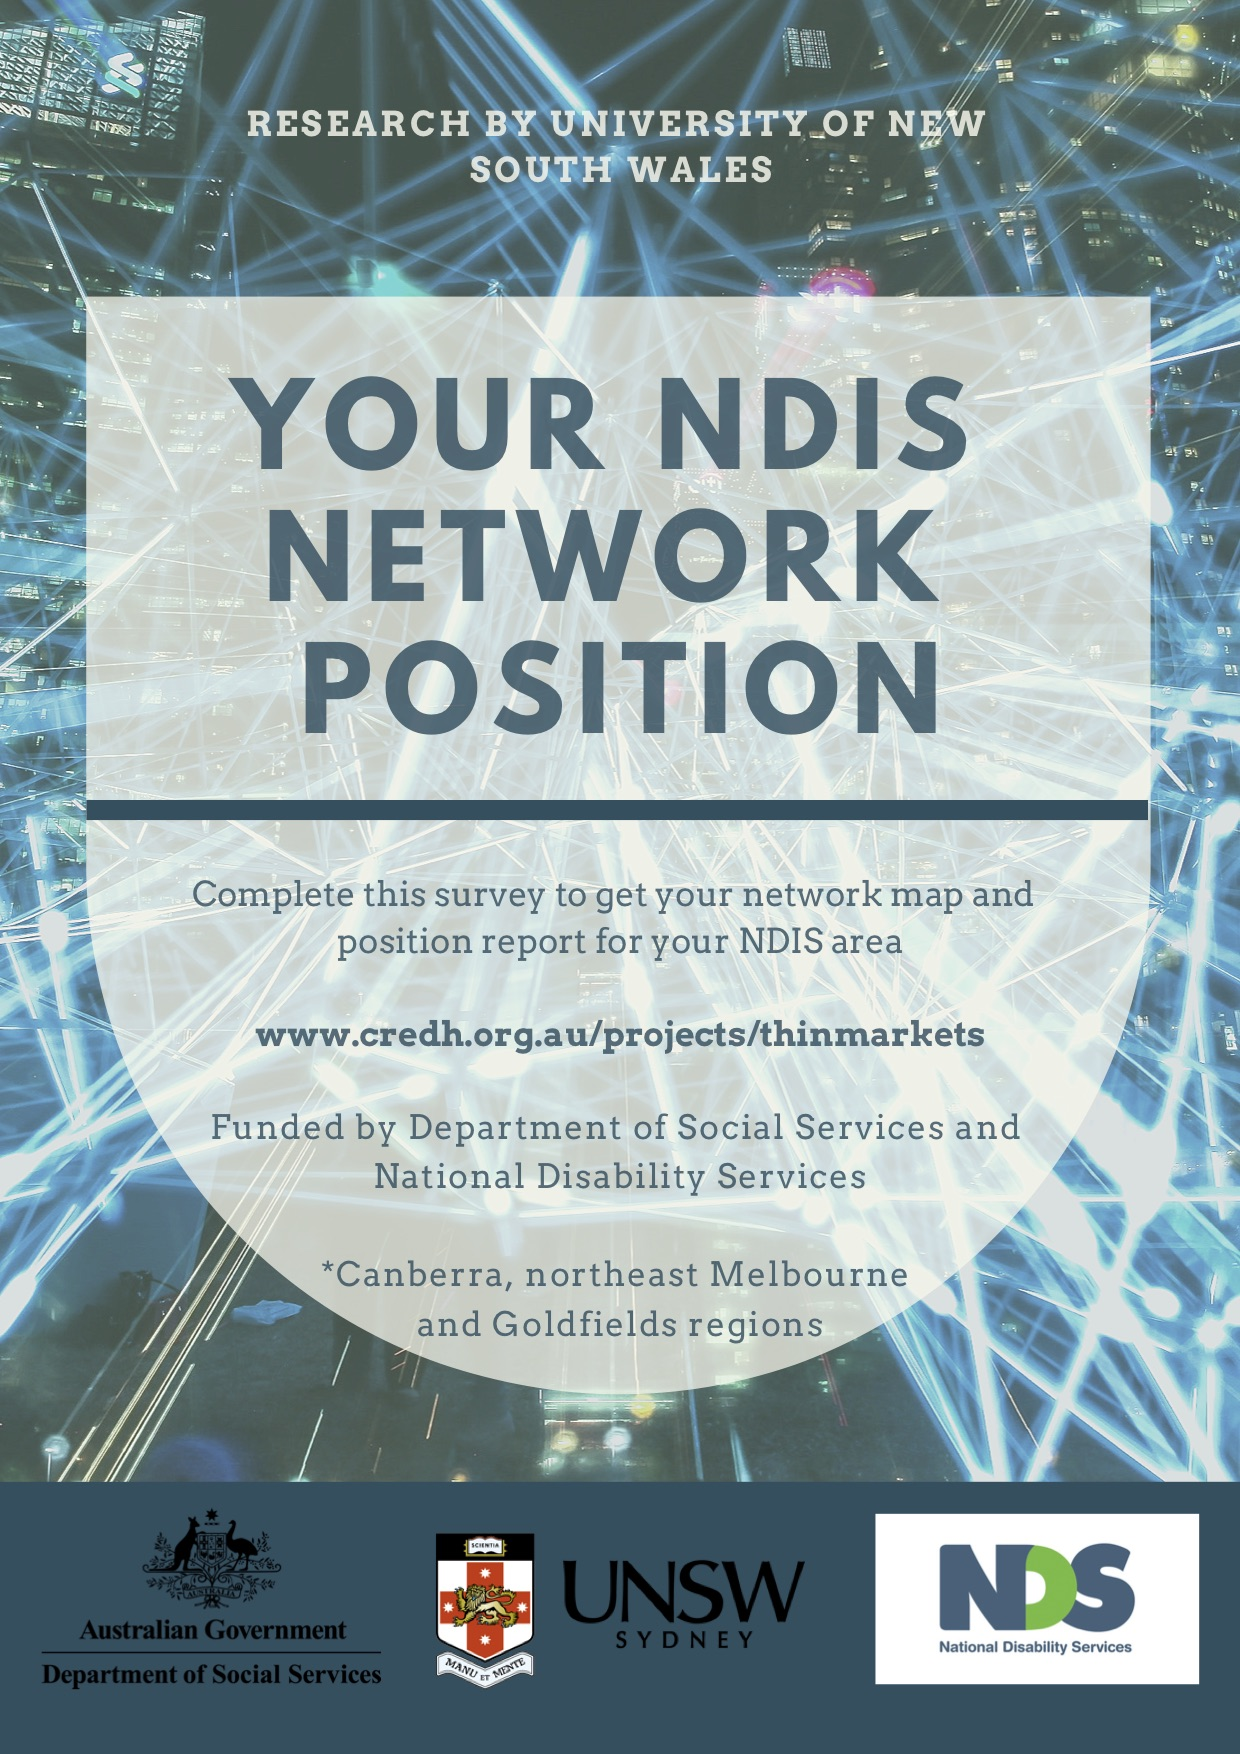 In order to succeed, the NDIS needs accurate knowledge about local support services. Providers can help out by filling a short survey.